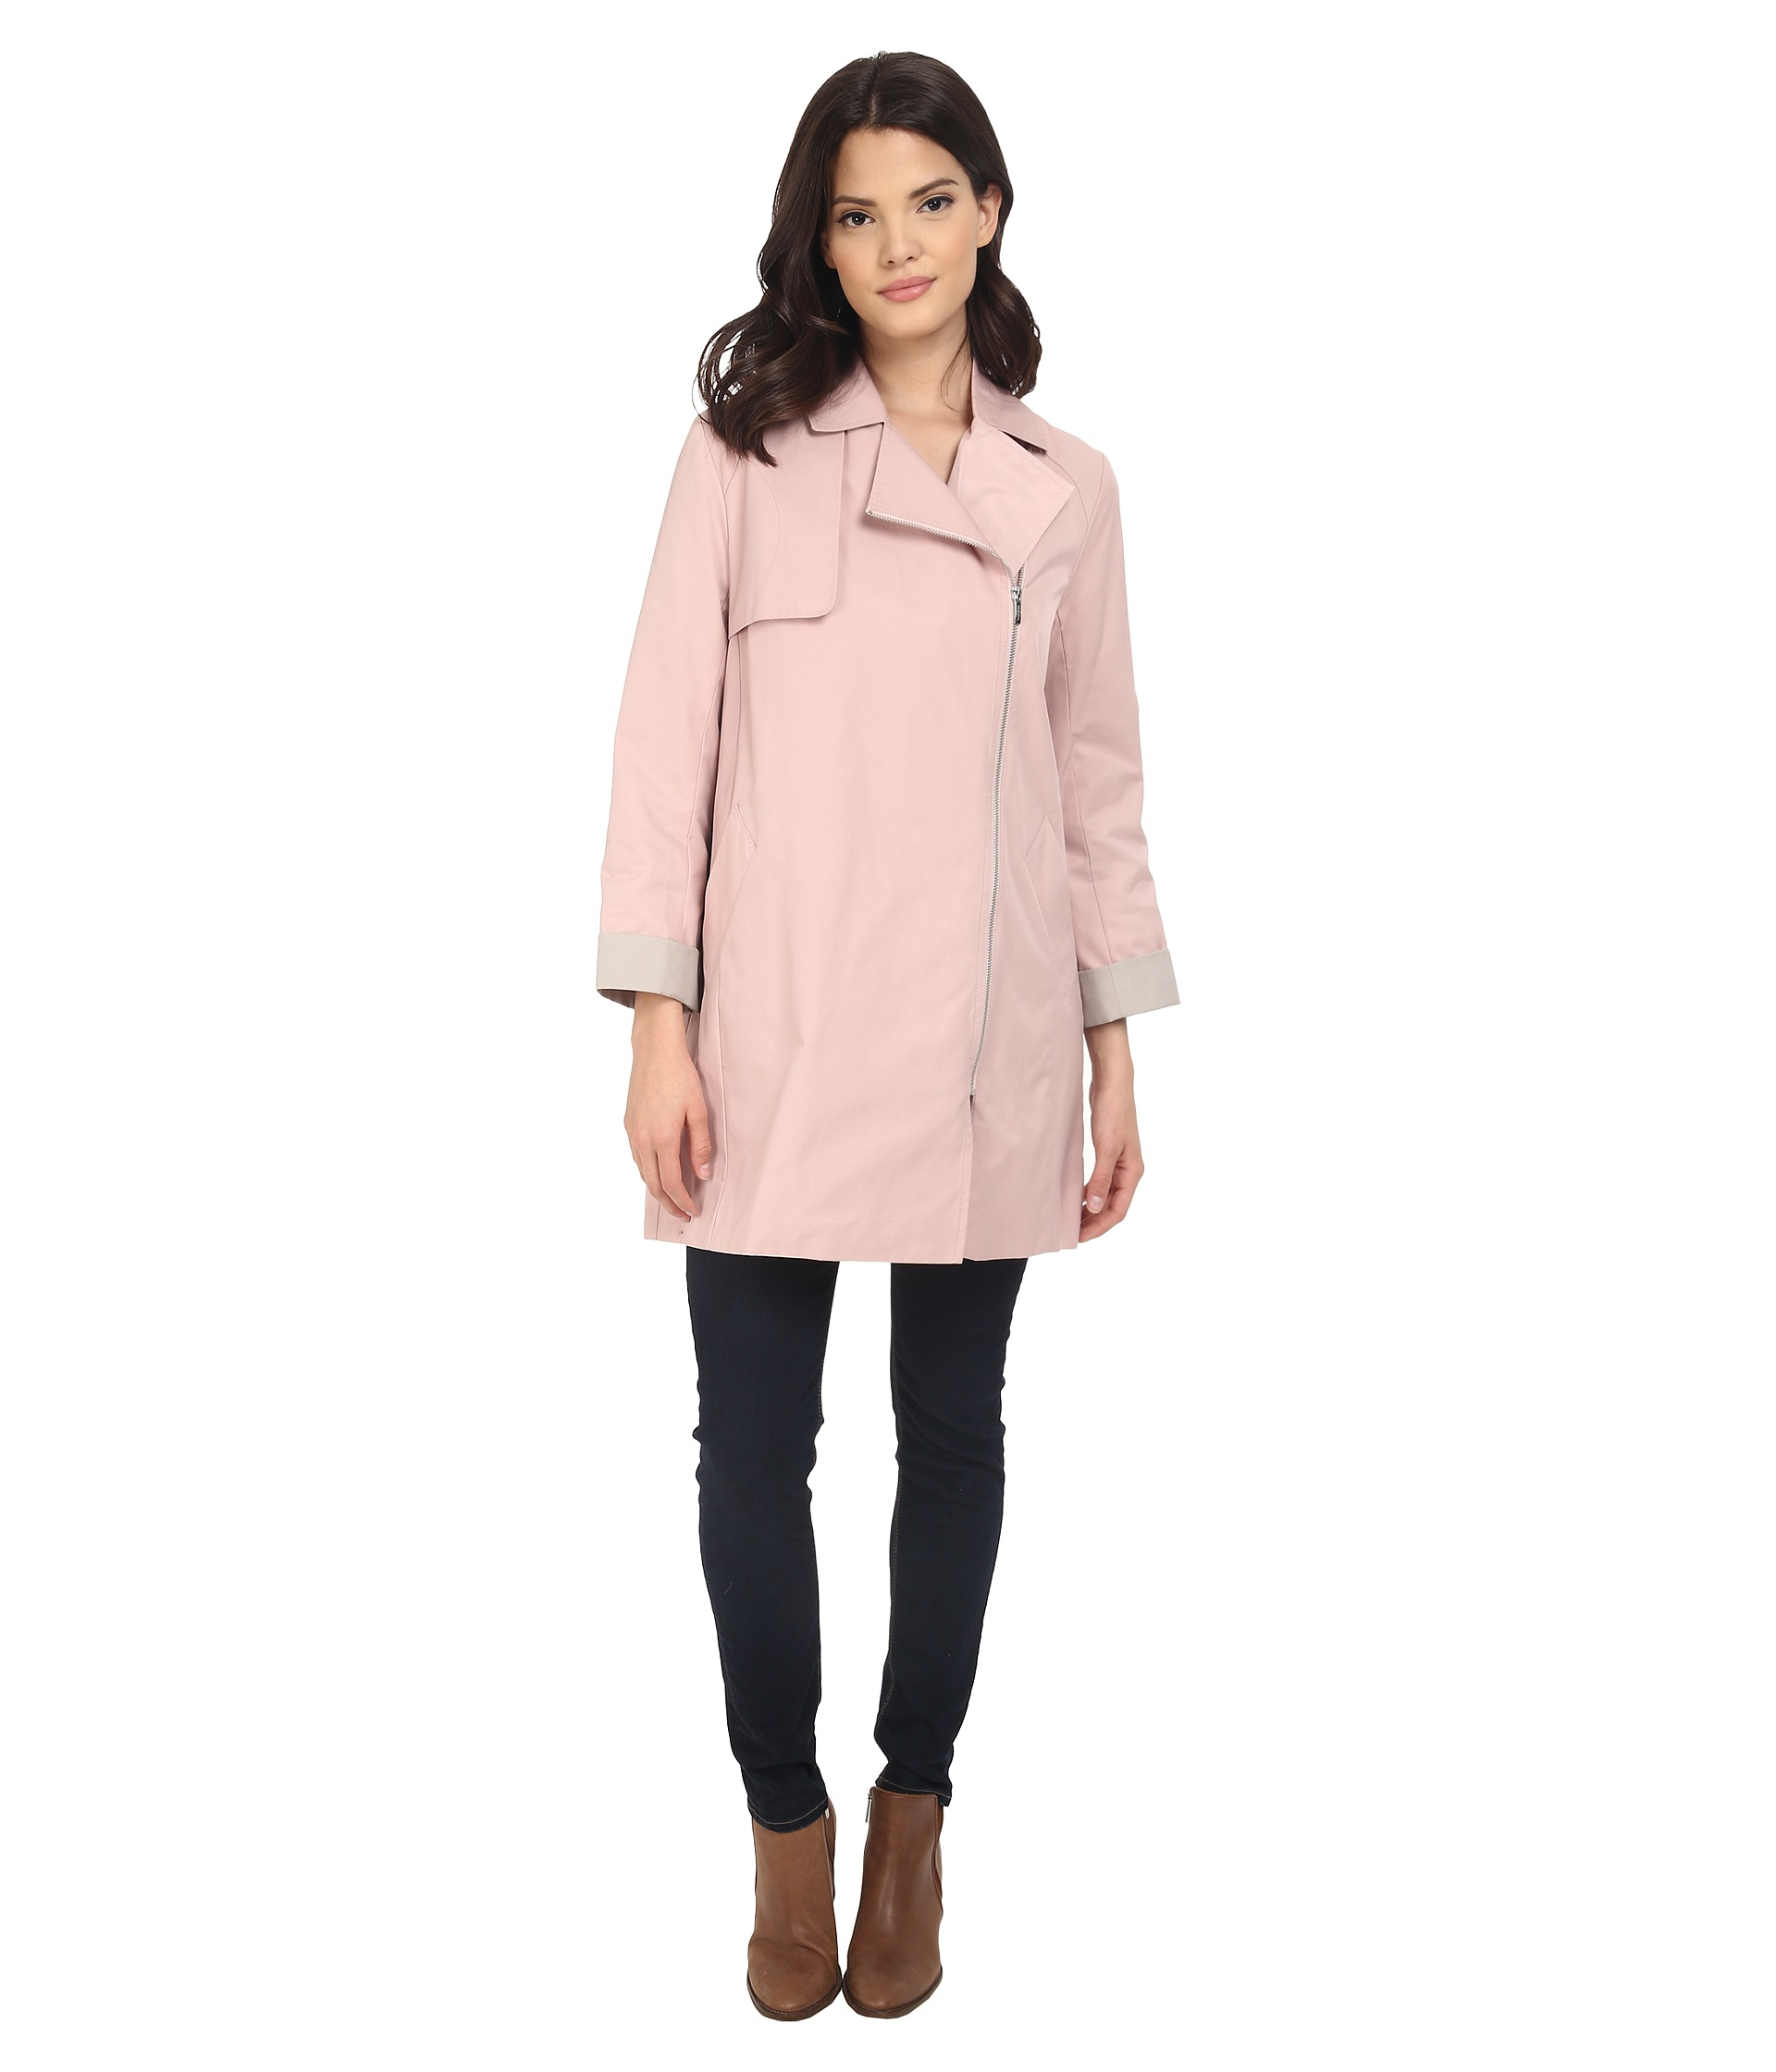 Cole Haan Coats & Outerwear at 6pm.com